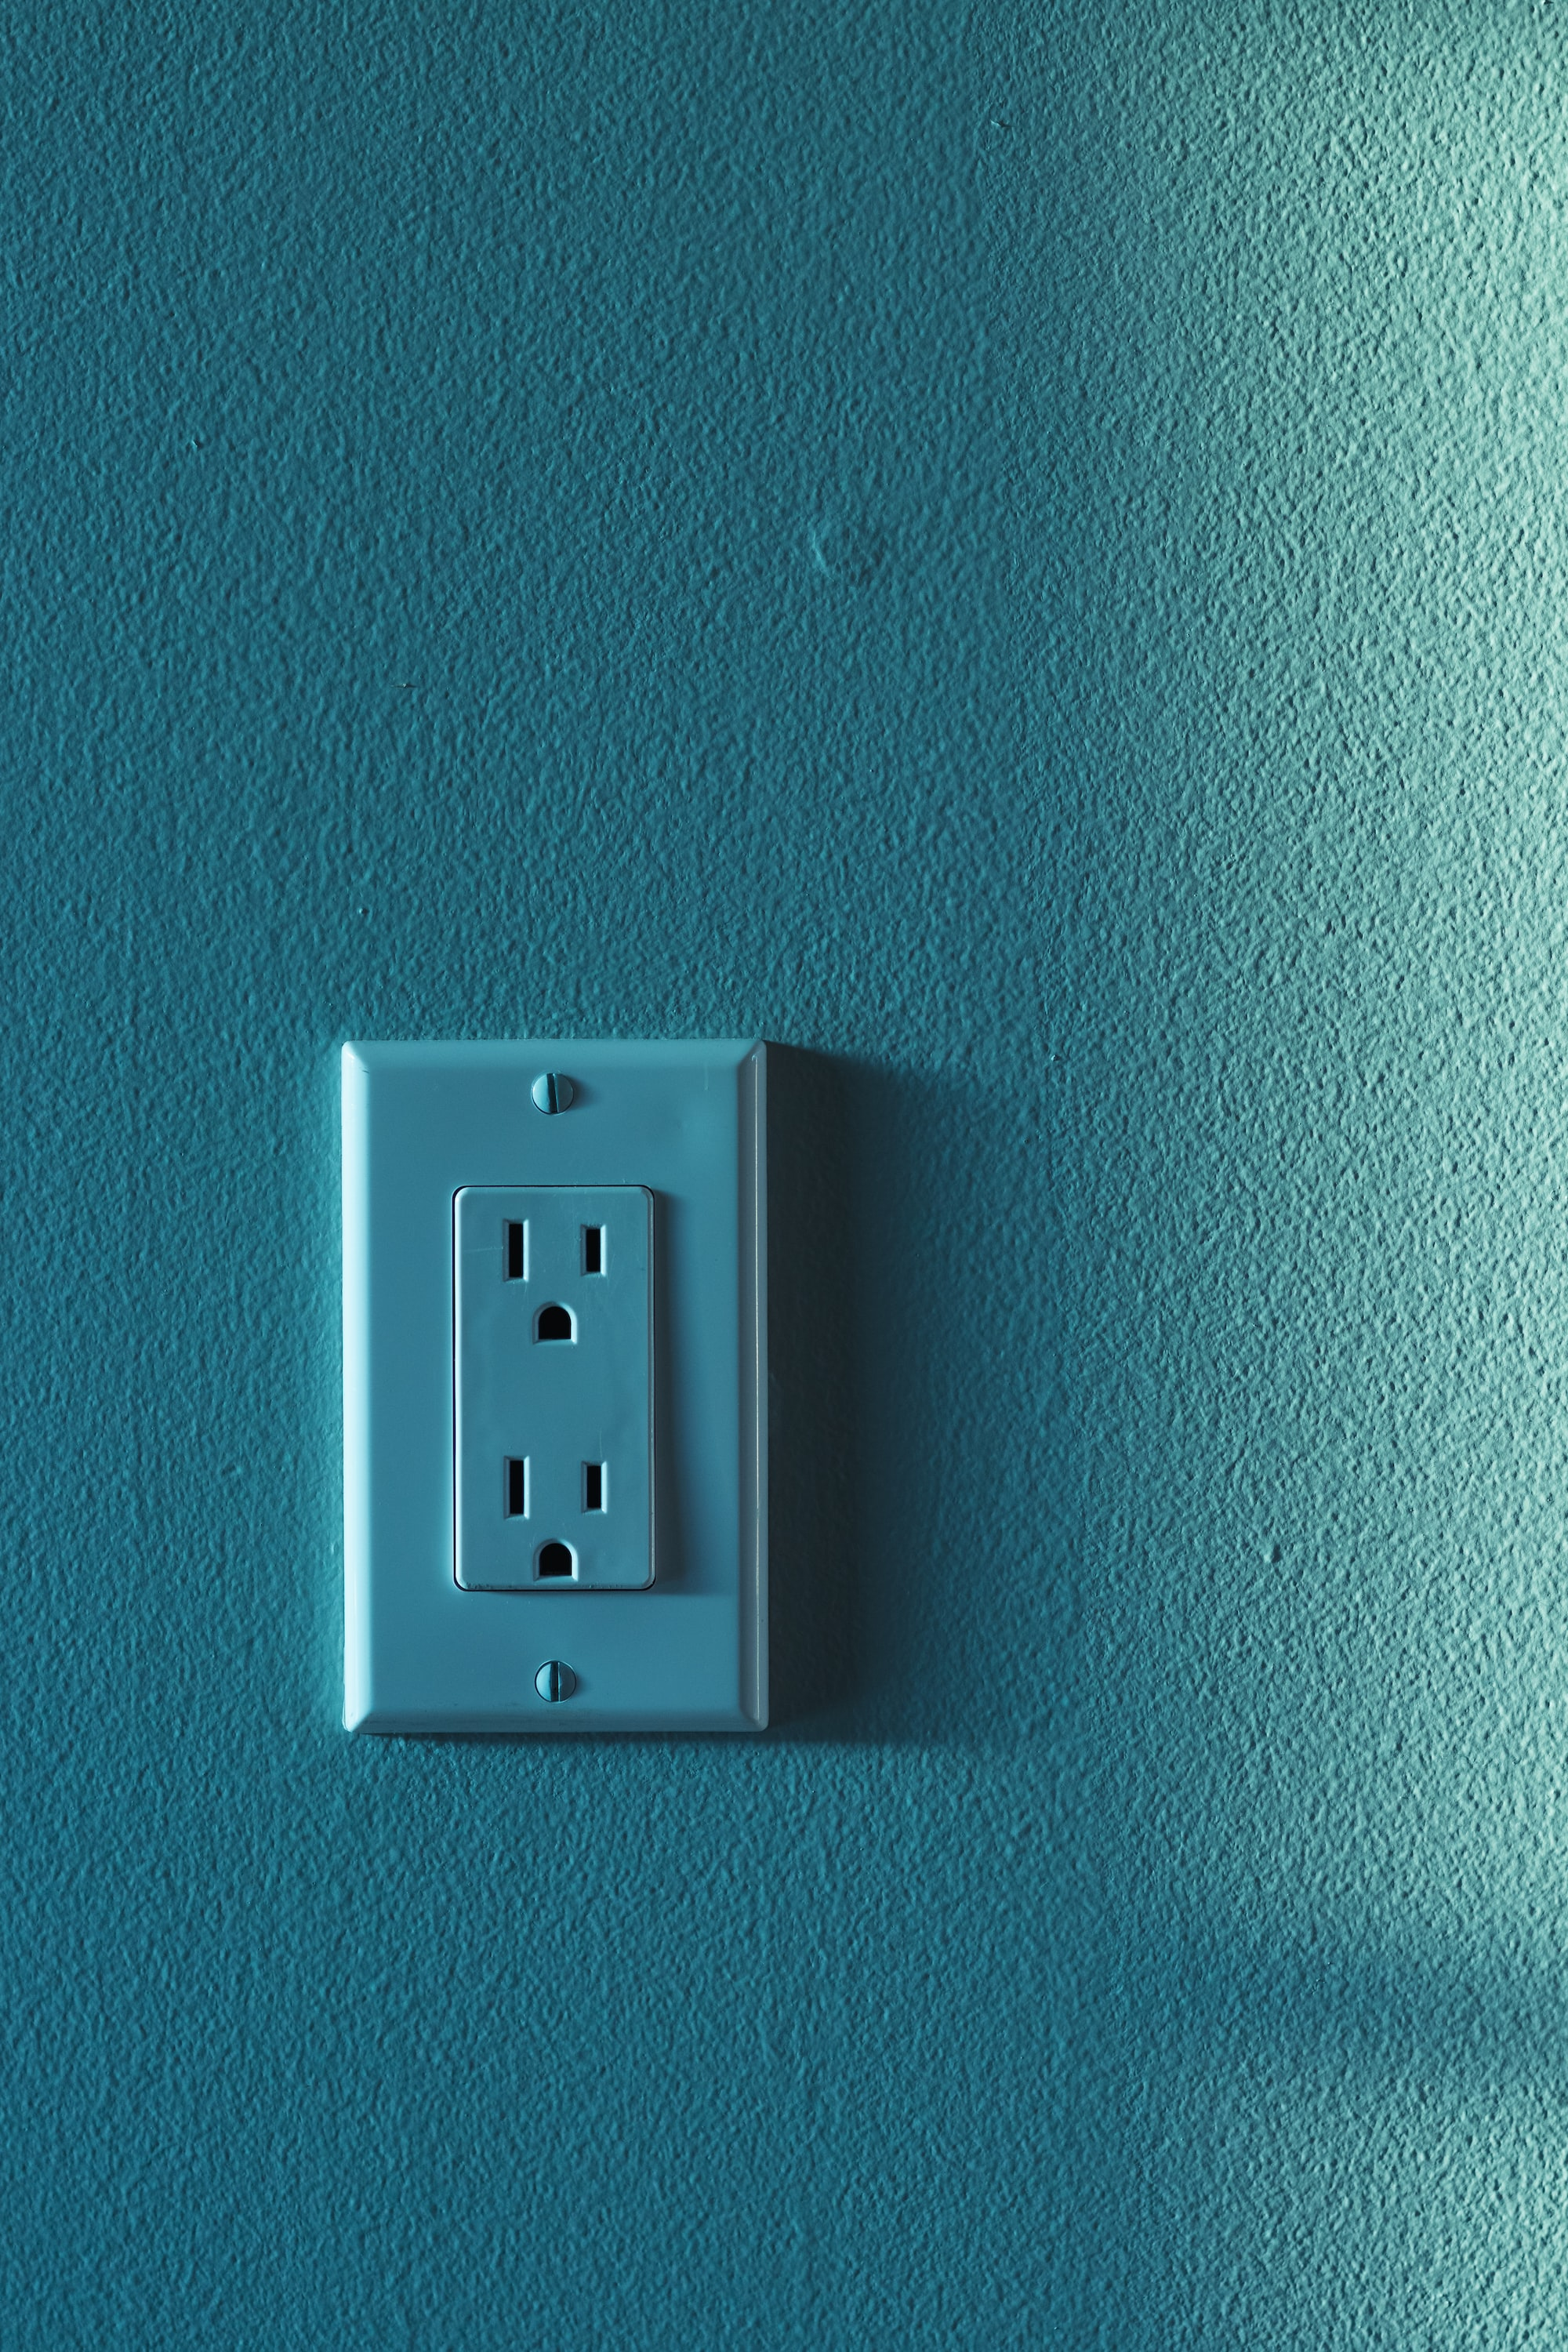 An electrical outlet in a wall, with a standard three-prong layout.